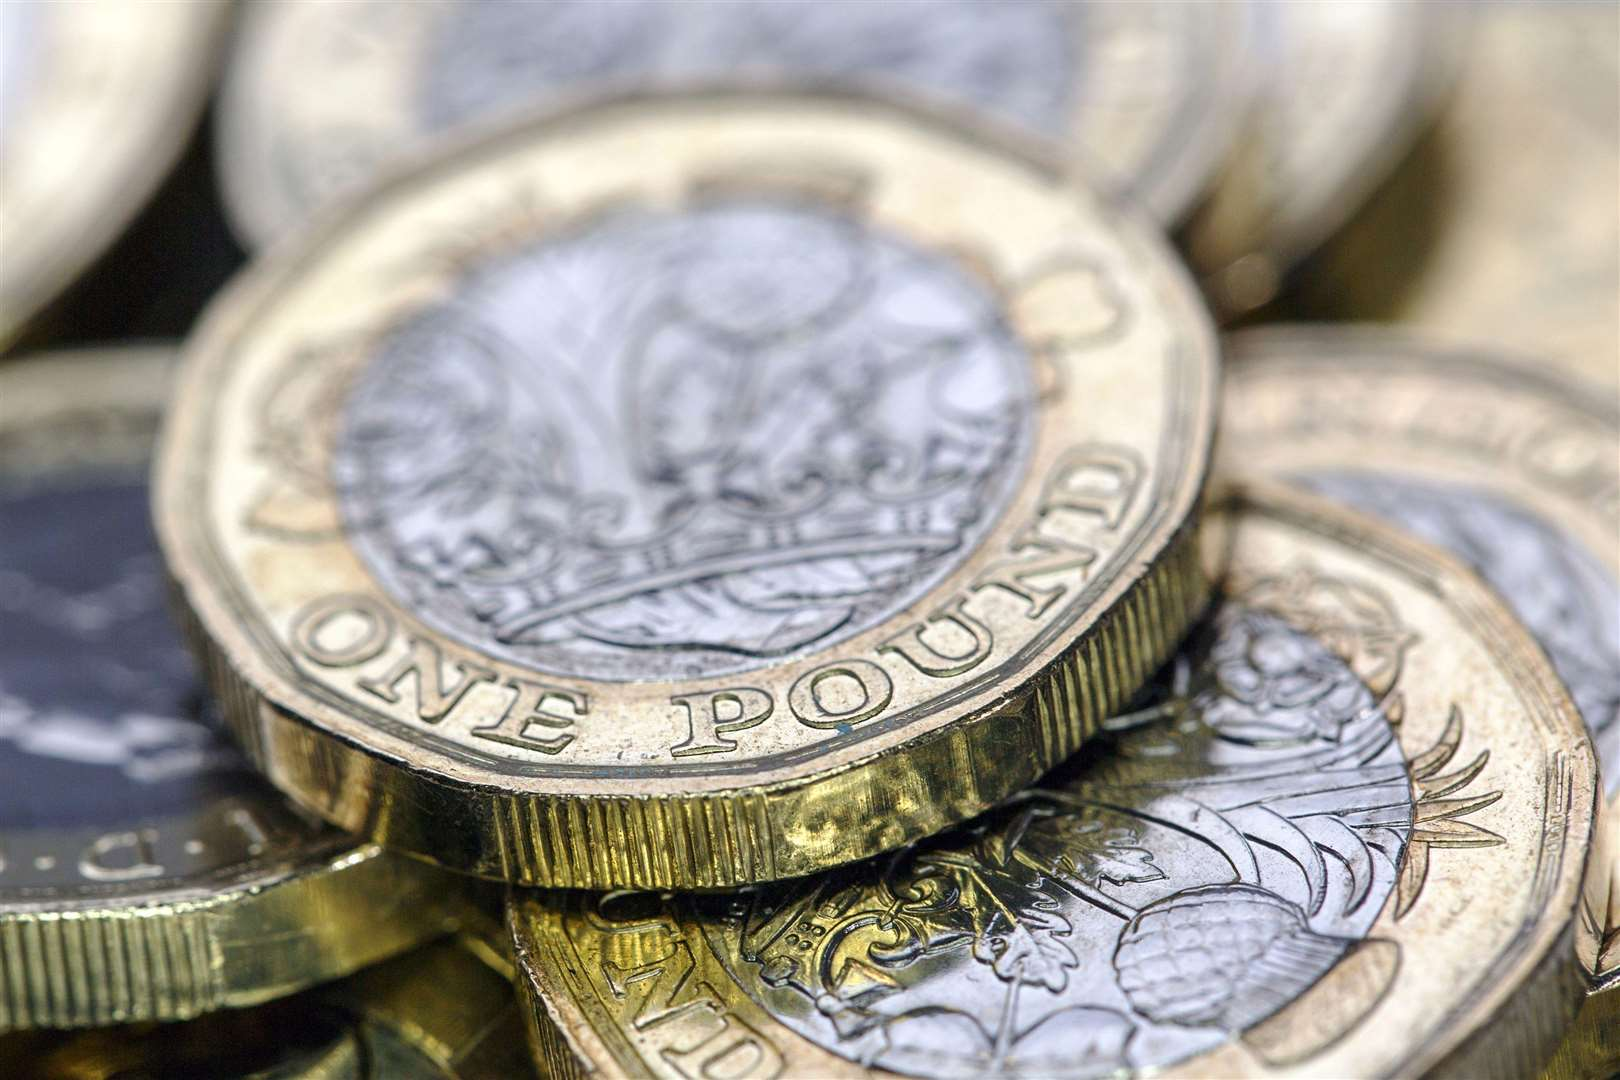 The cost of lending for small businesses is soaring according to the FSB report